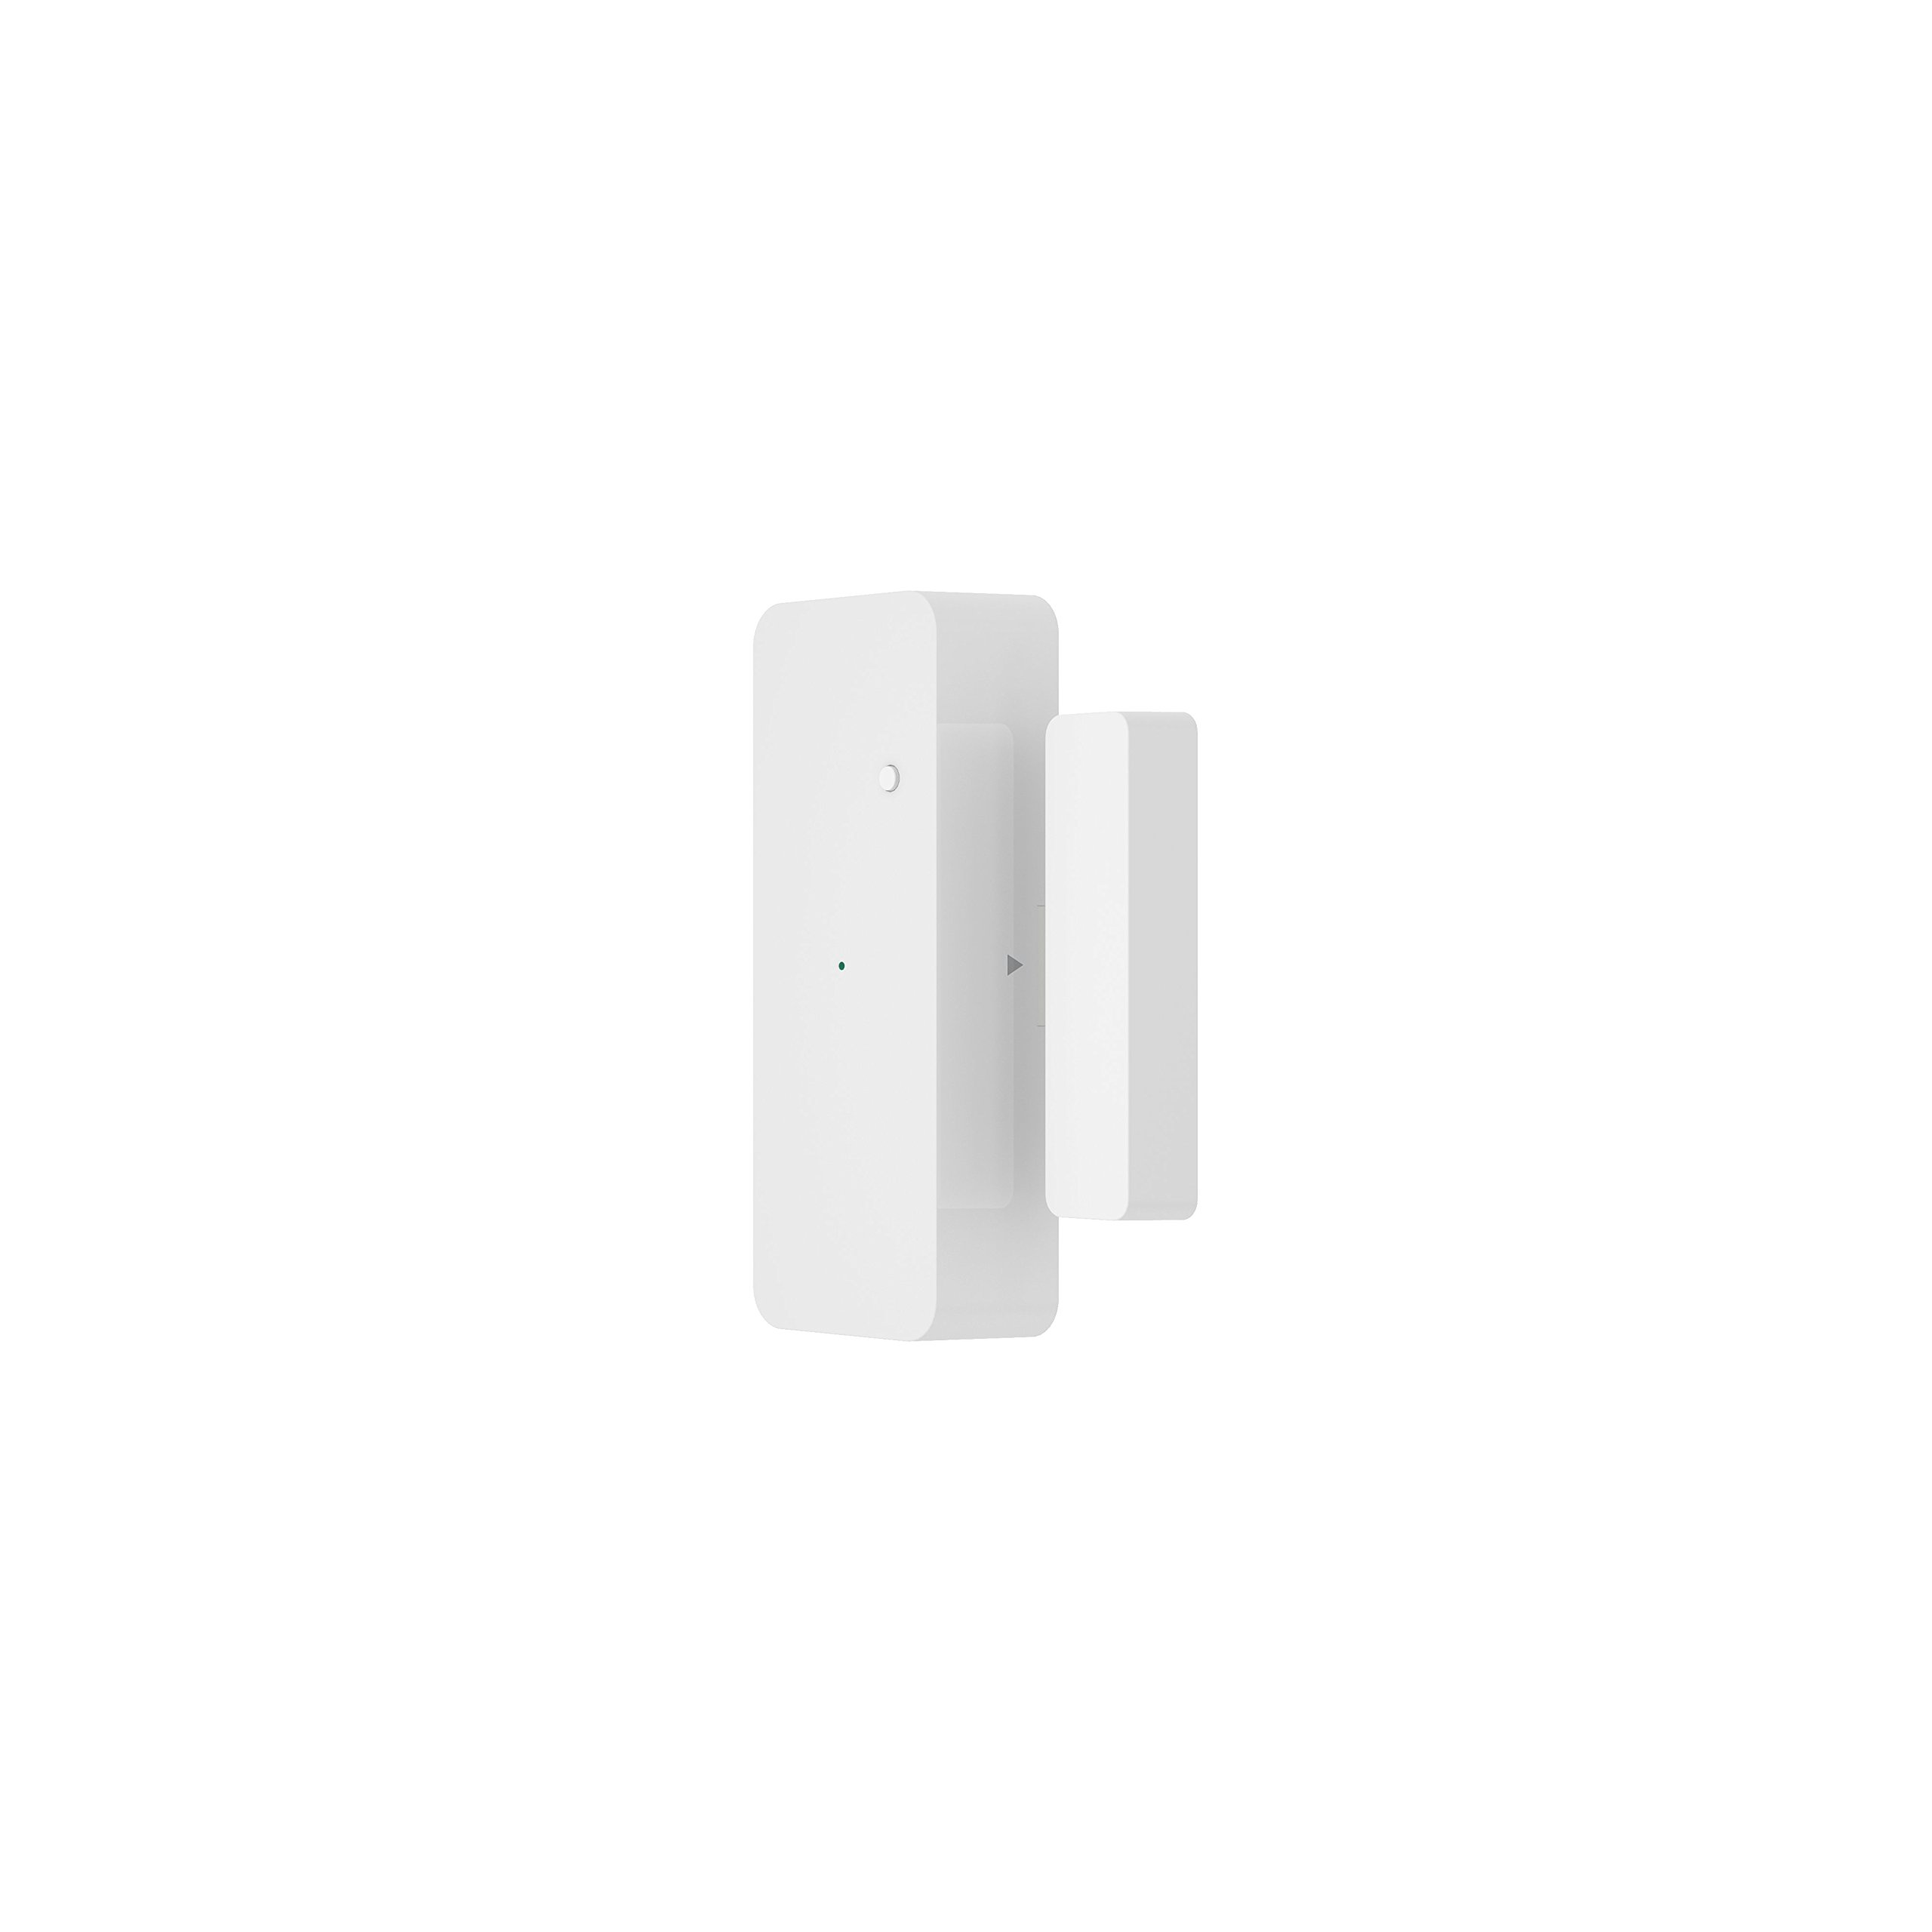 Insteon 2843-222 Wireless Door & Window Sensor, Use with Bridge for Smartphone Alerts, Uses Superior Mesh Wireless Technology for Unbeatable Reliability - Better than Wi-Fi, Zigbee and Z-Wave